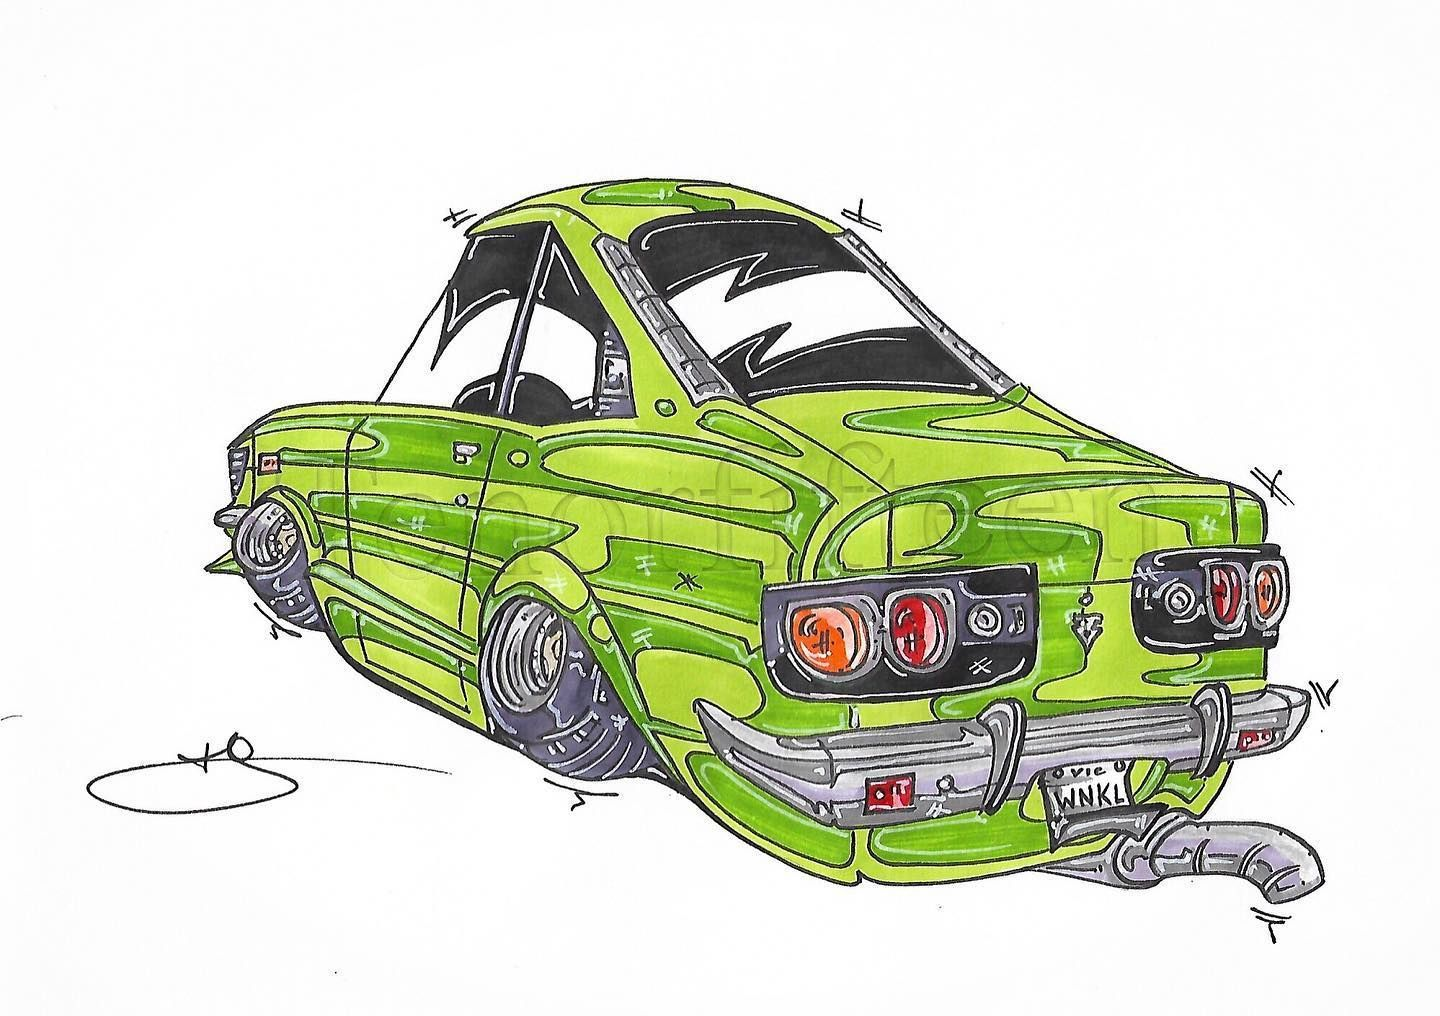 Sub-lime #rx3 #mazdarx3 #savannarx3 #savanna #rotary #wankel #10a as a #drawing #cardrawing inquire for pricing and commissions